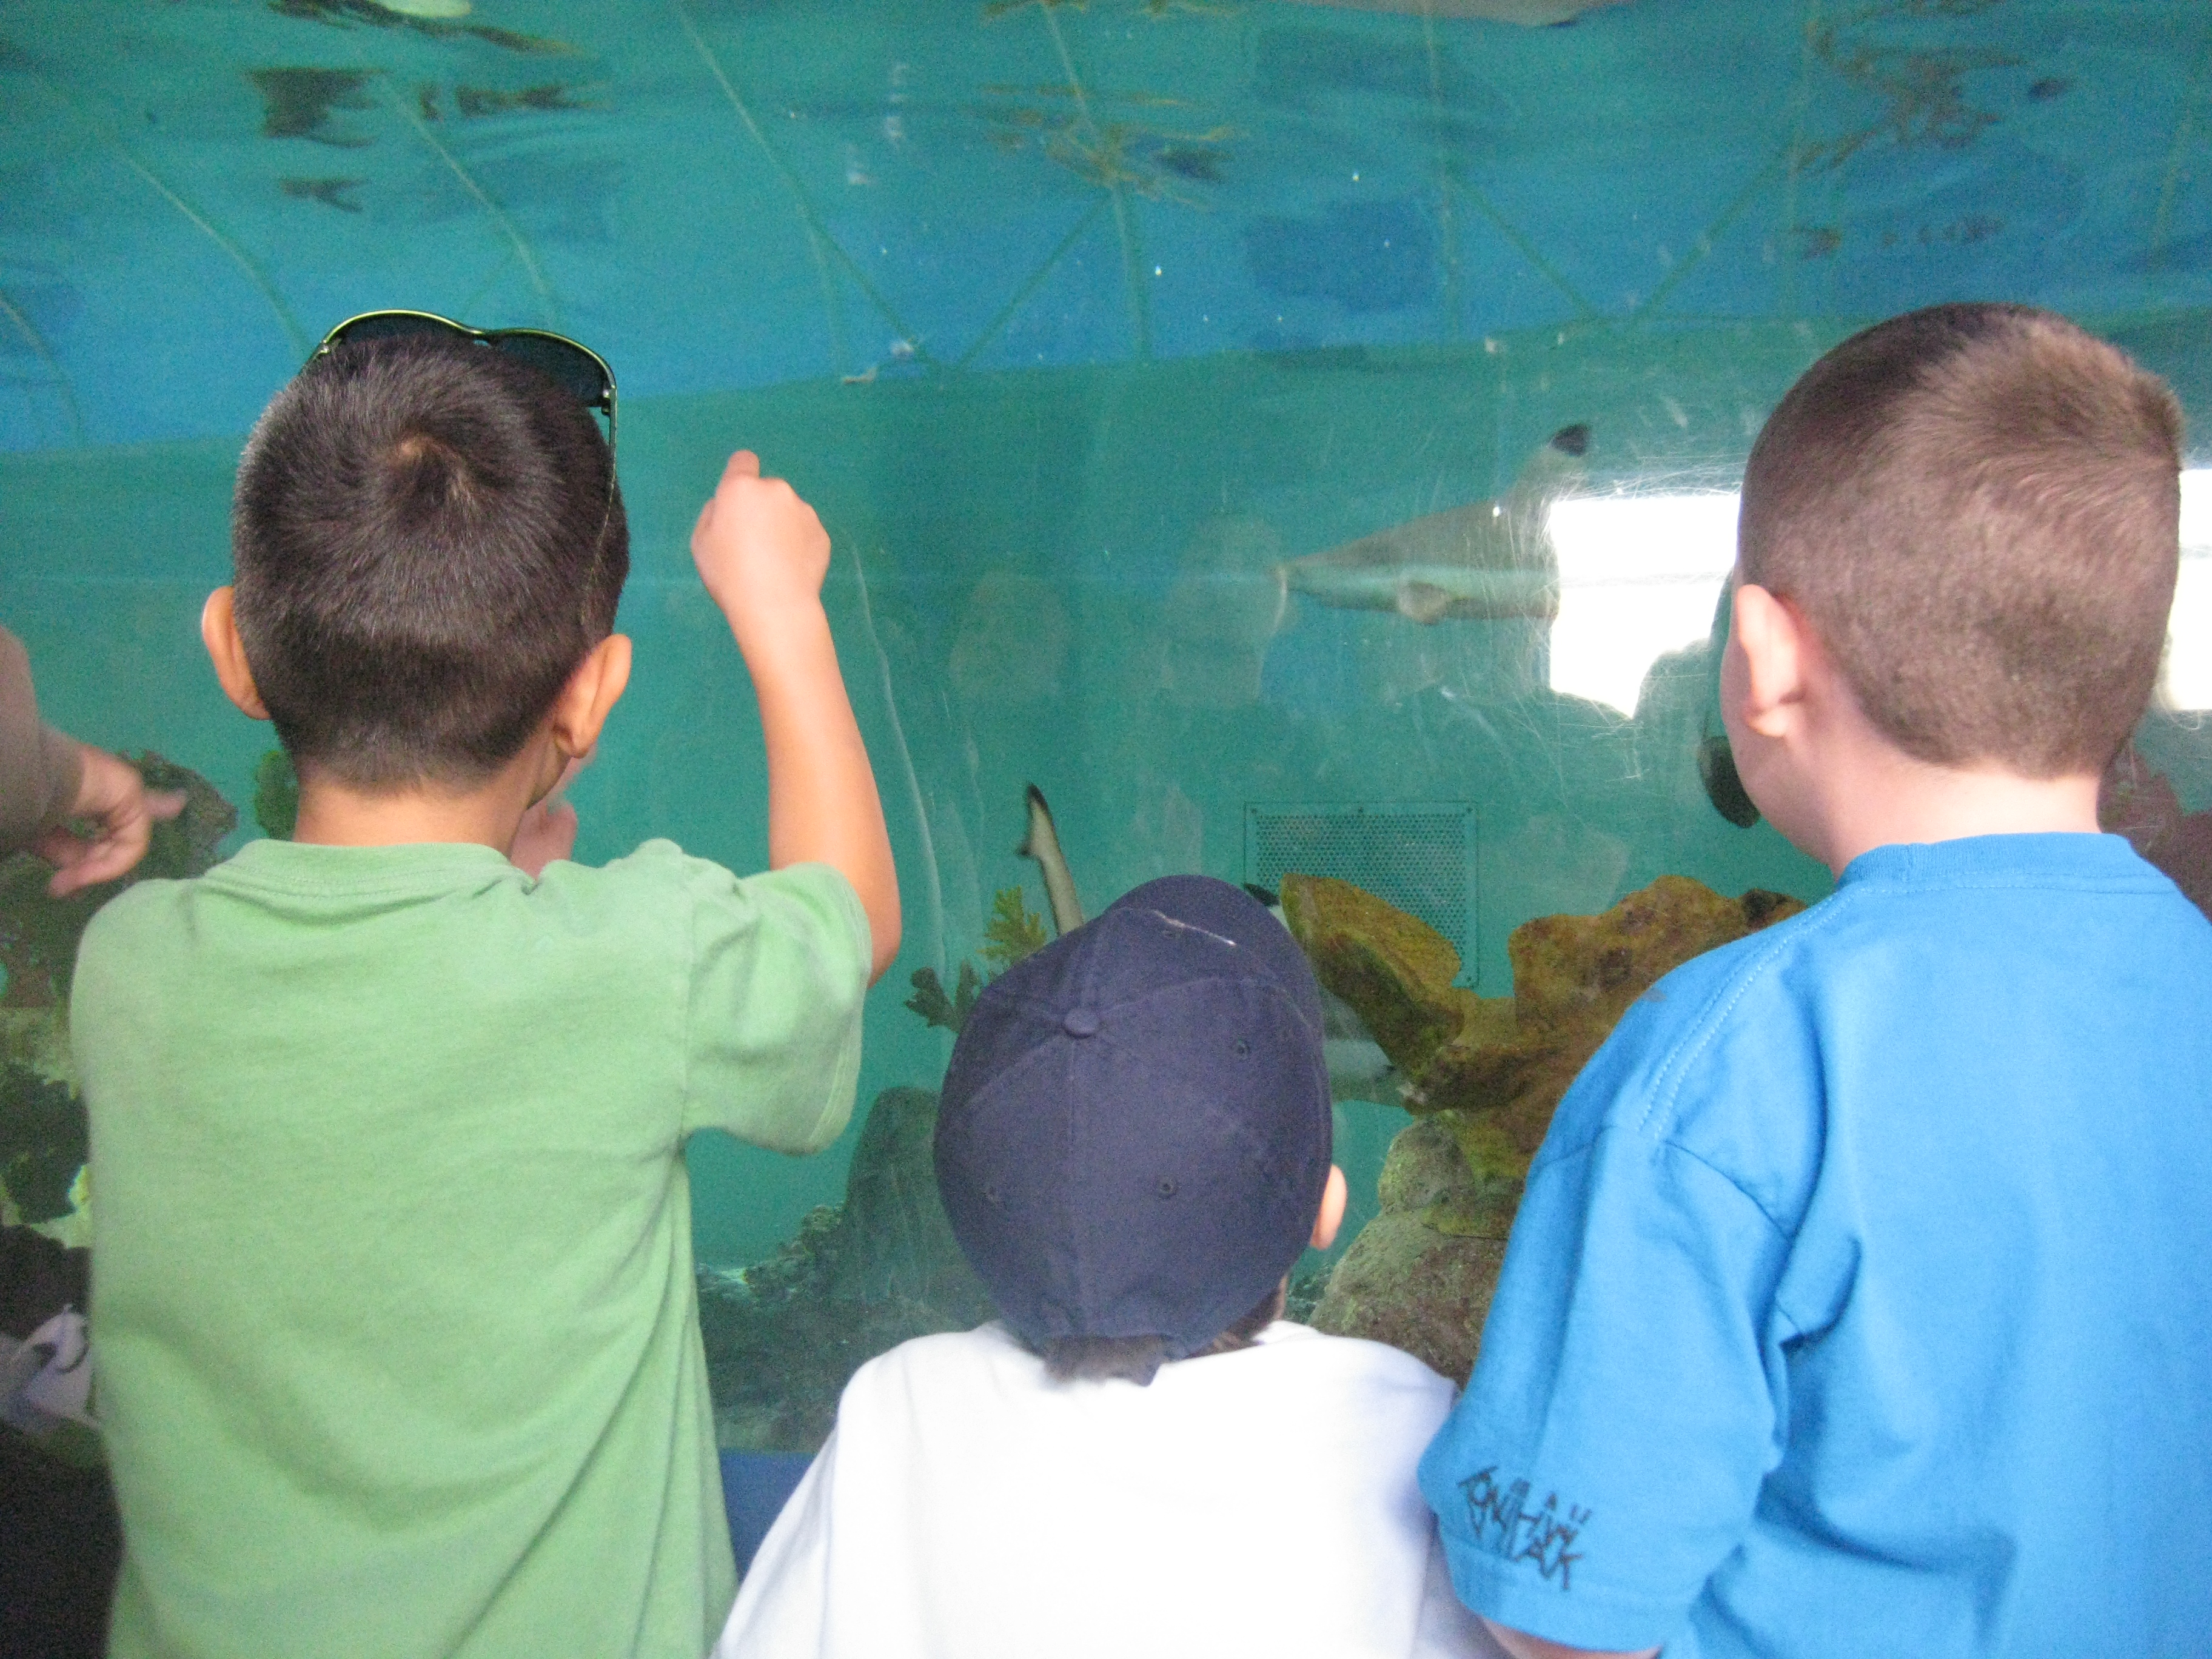 Birch Aquarium is an Affordable Must-See Family Attraction in San Diego